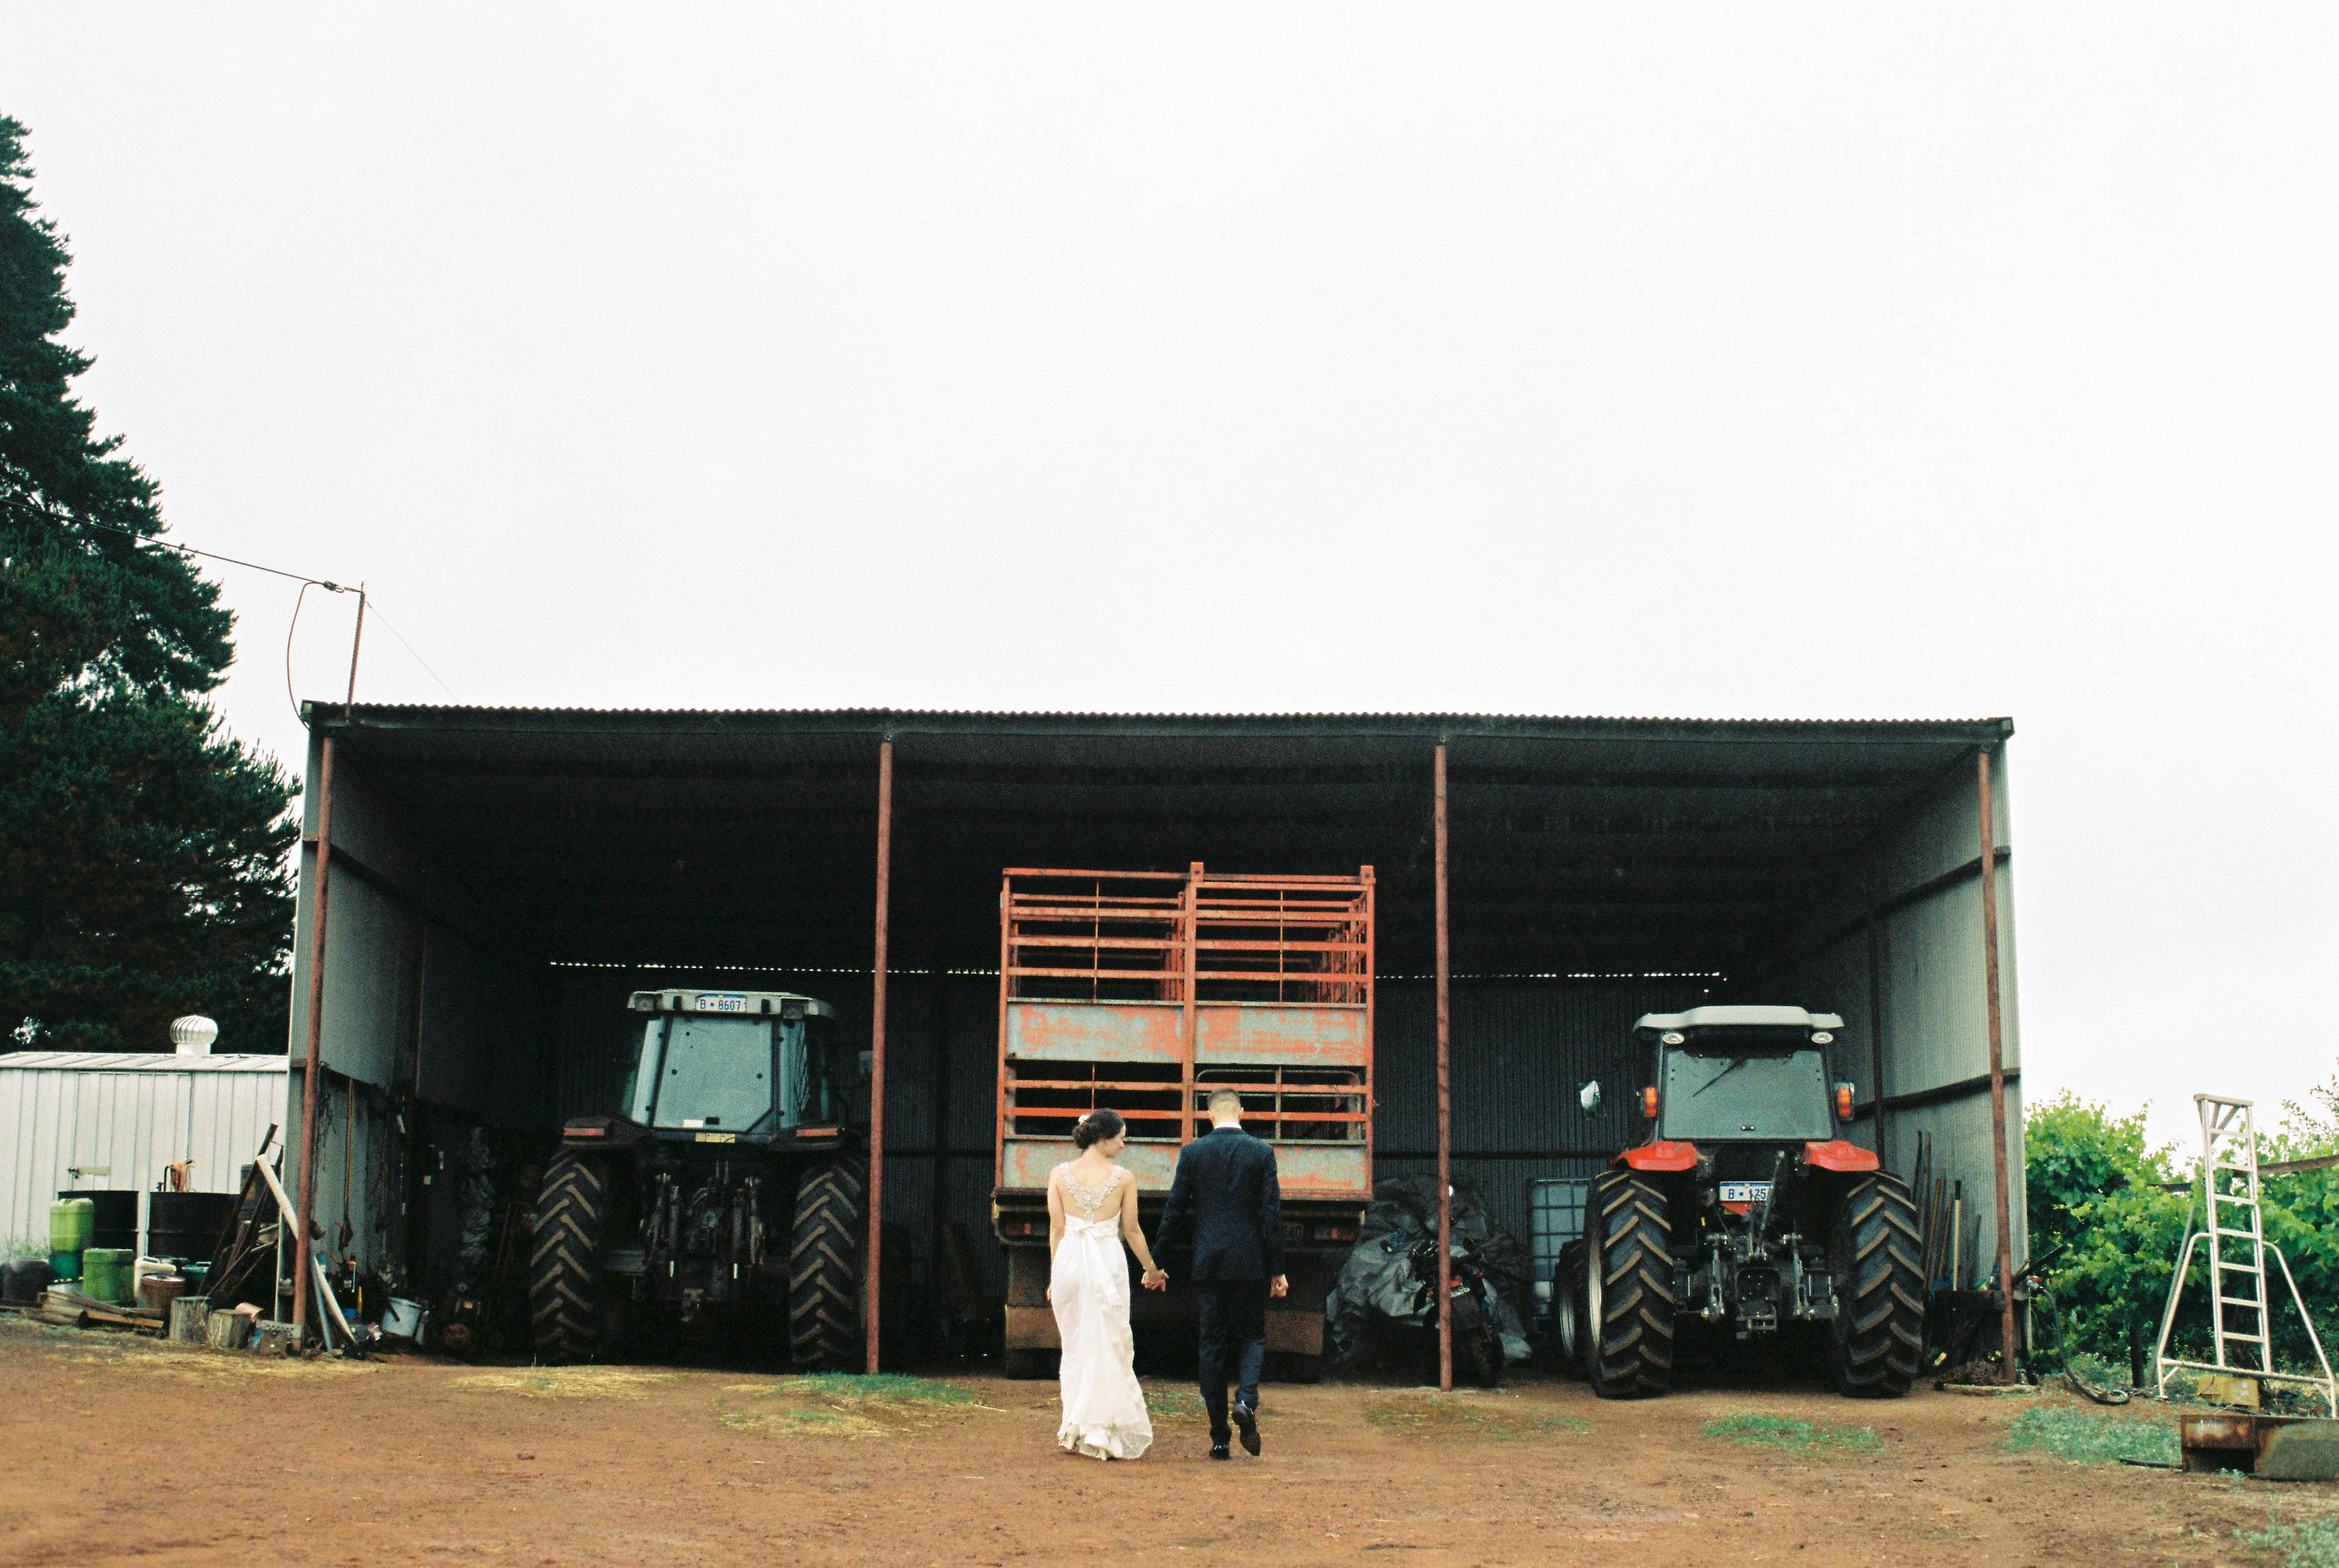 Wedding portraits of the bride & groom standing in front of an old farm shed filled with trucks and tractors